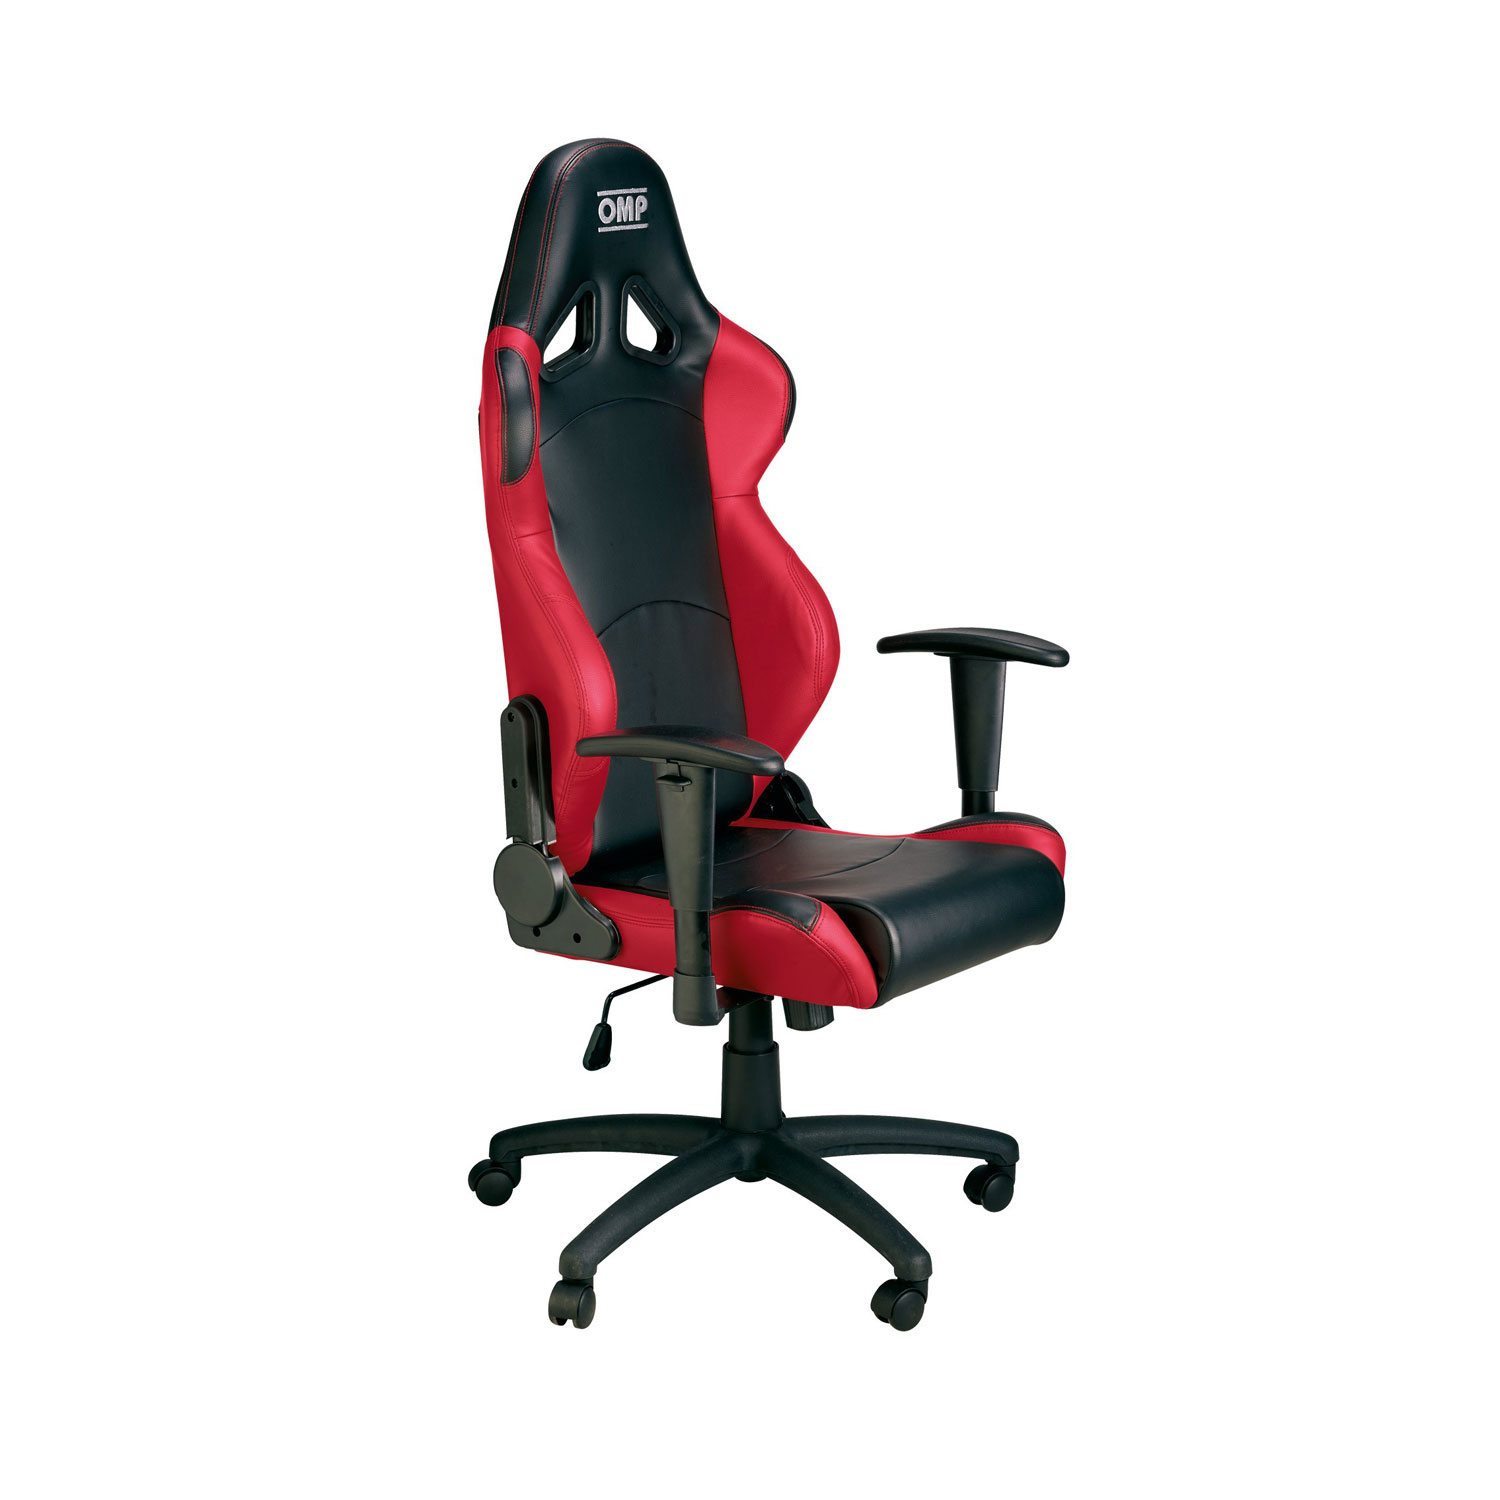 2016 OMP Italy fice Chair black red